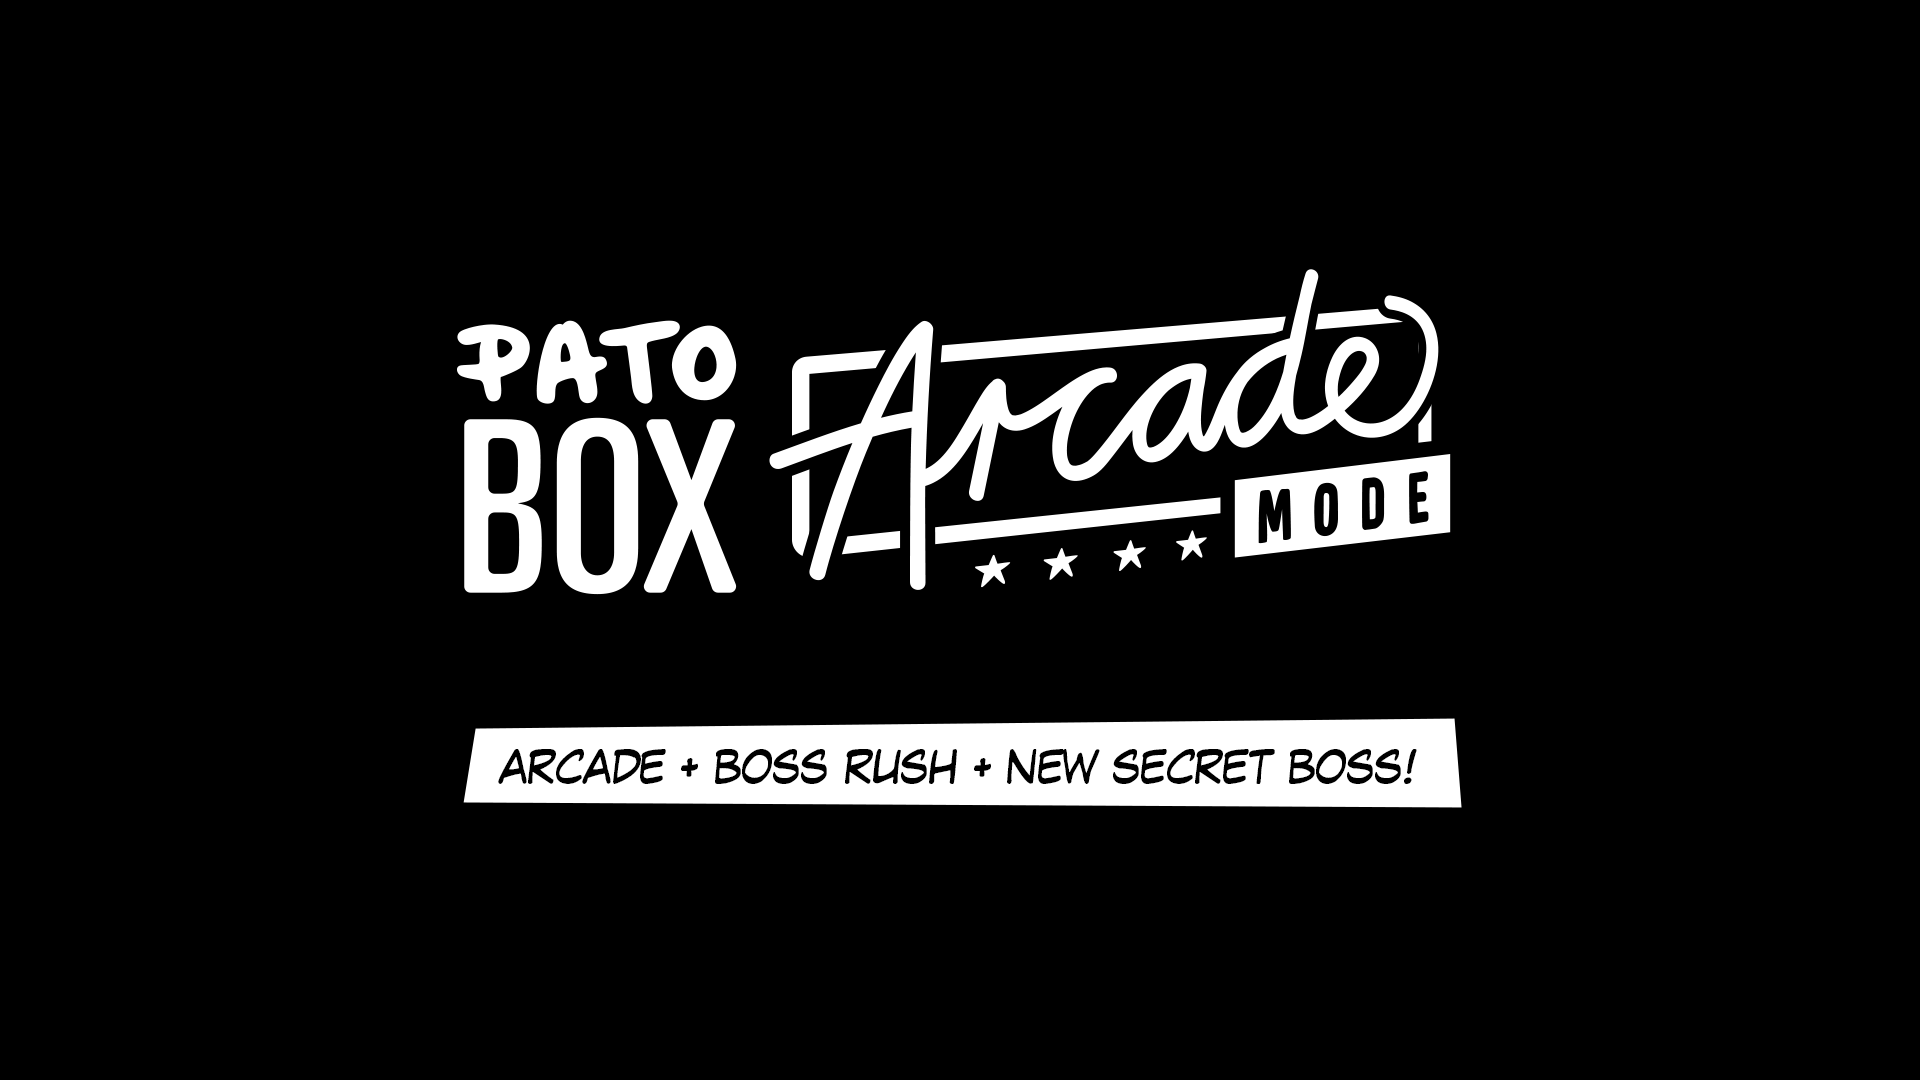 Pato Box :: Arcade Mode and OST Live now!